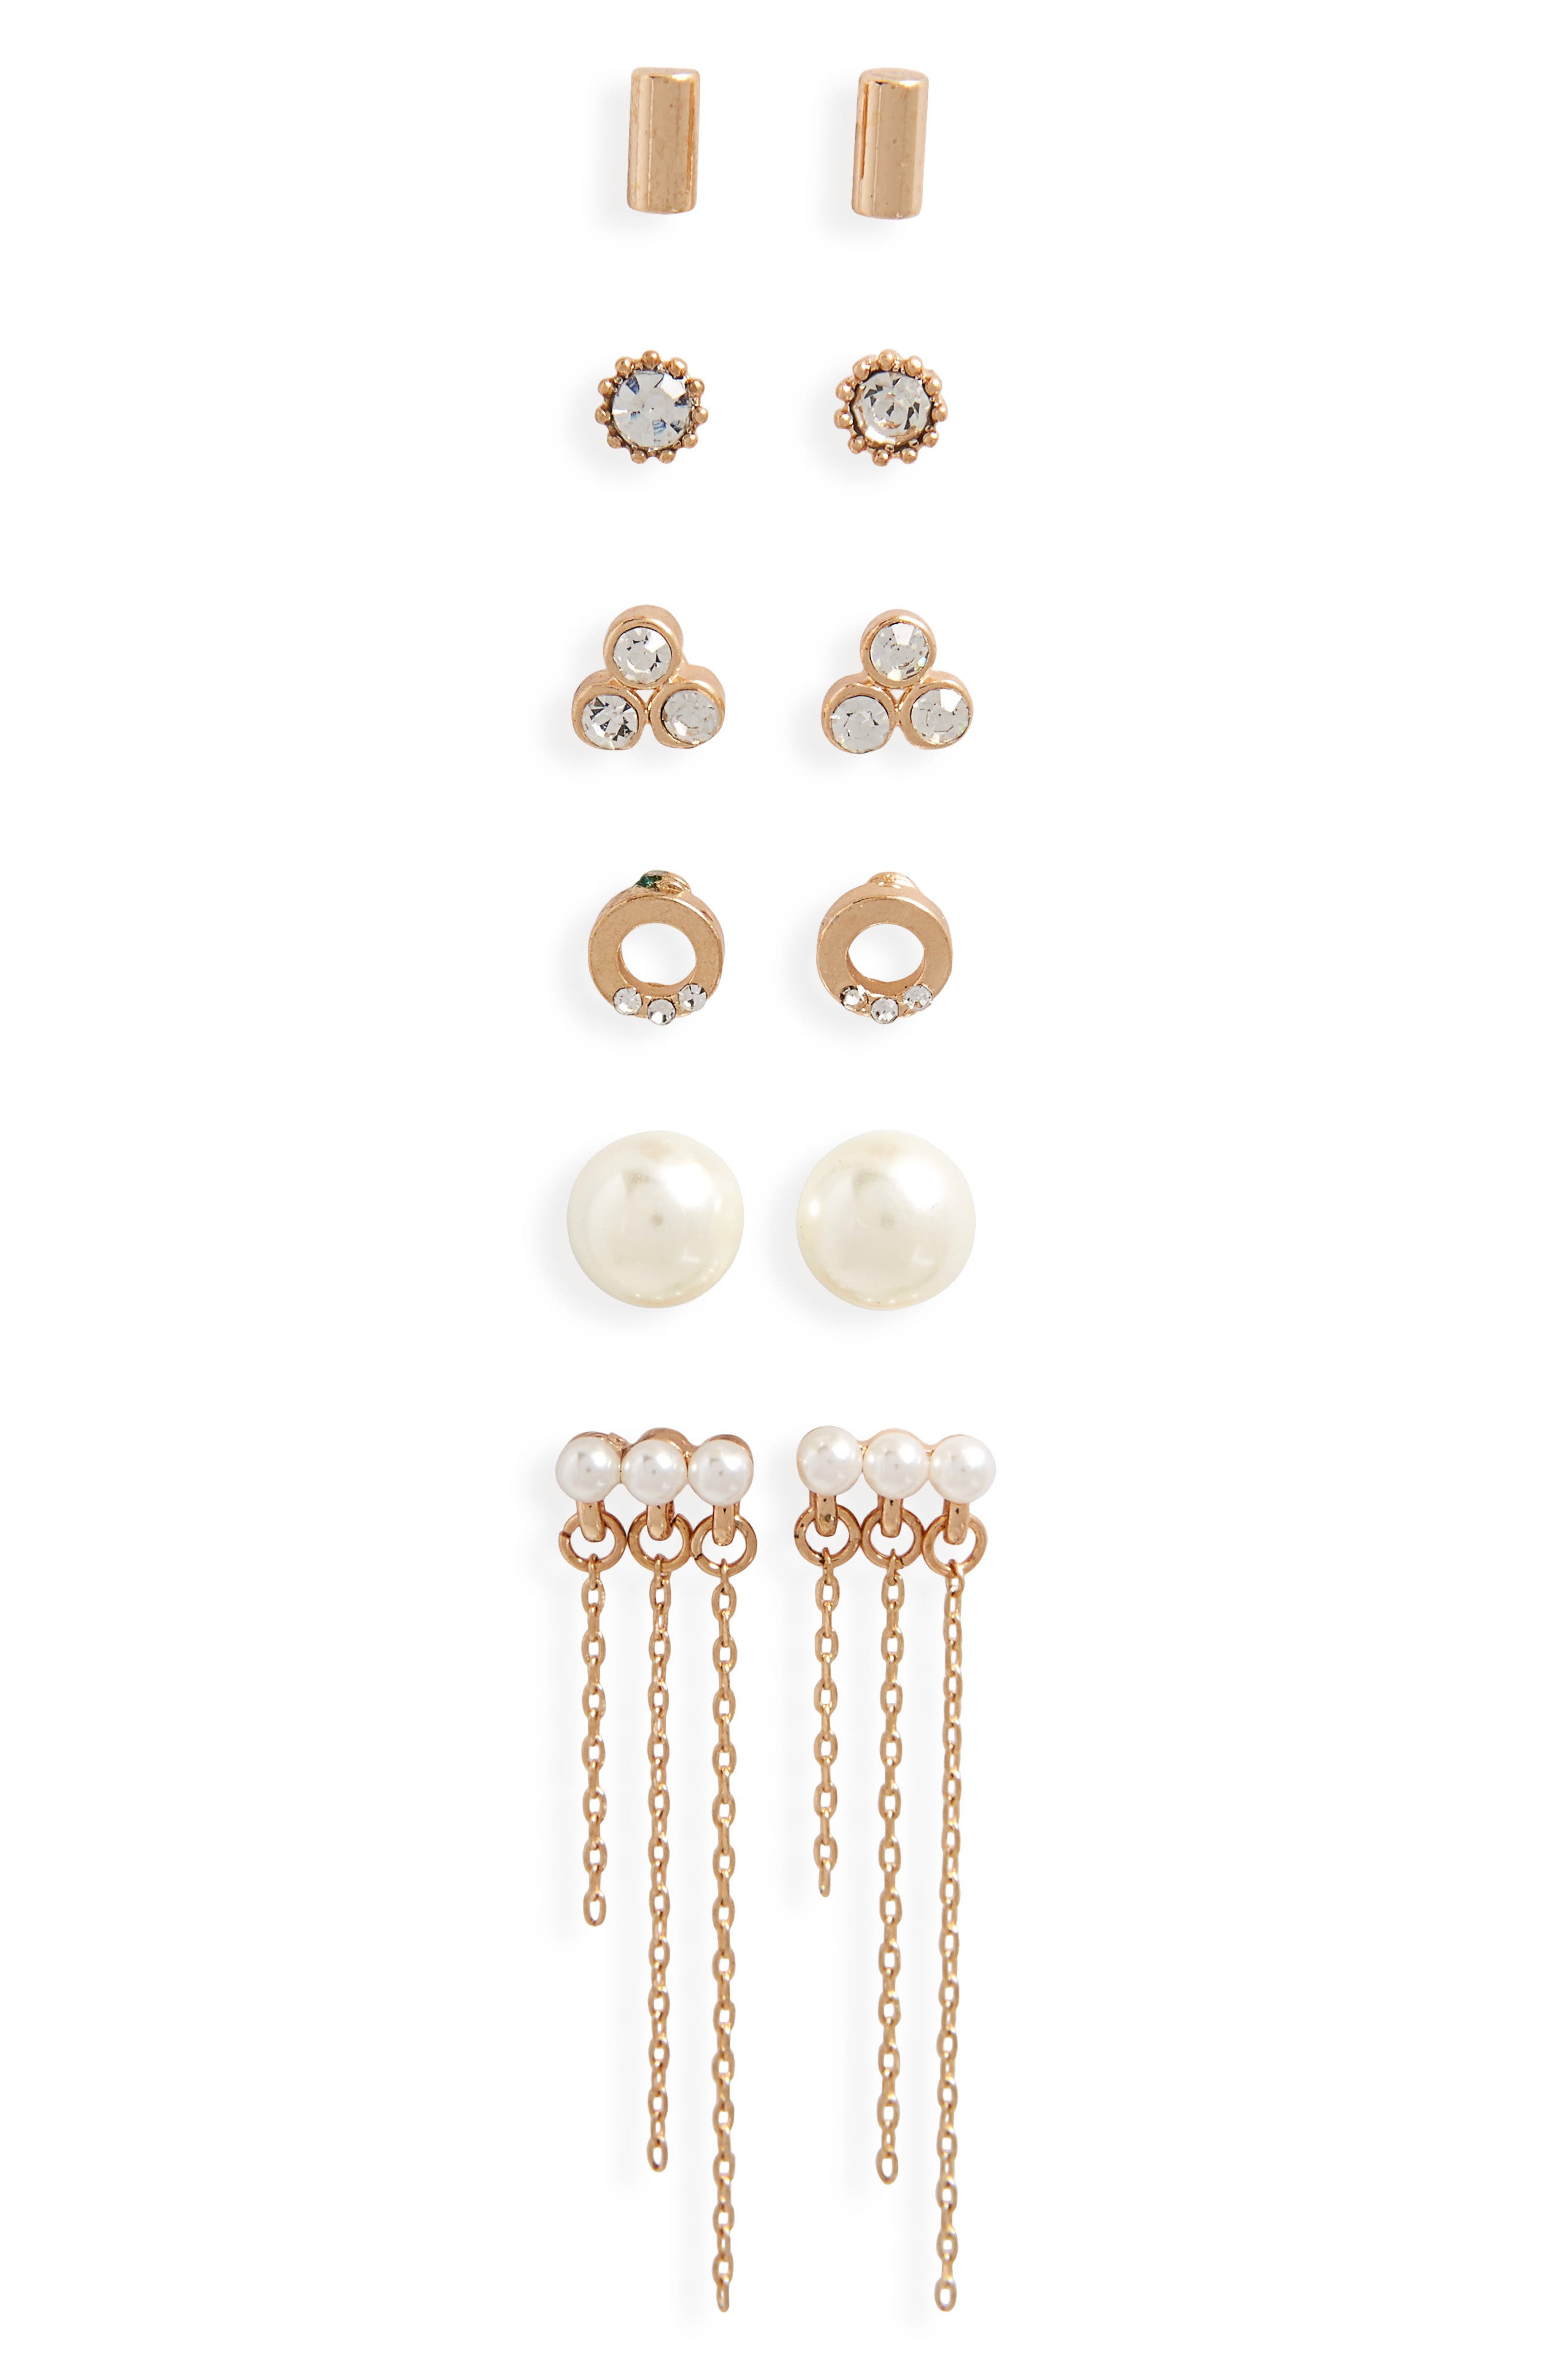 6-Pack Imitation Pearl & Crystal Earrings,                         Main,                         color, 710